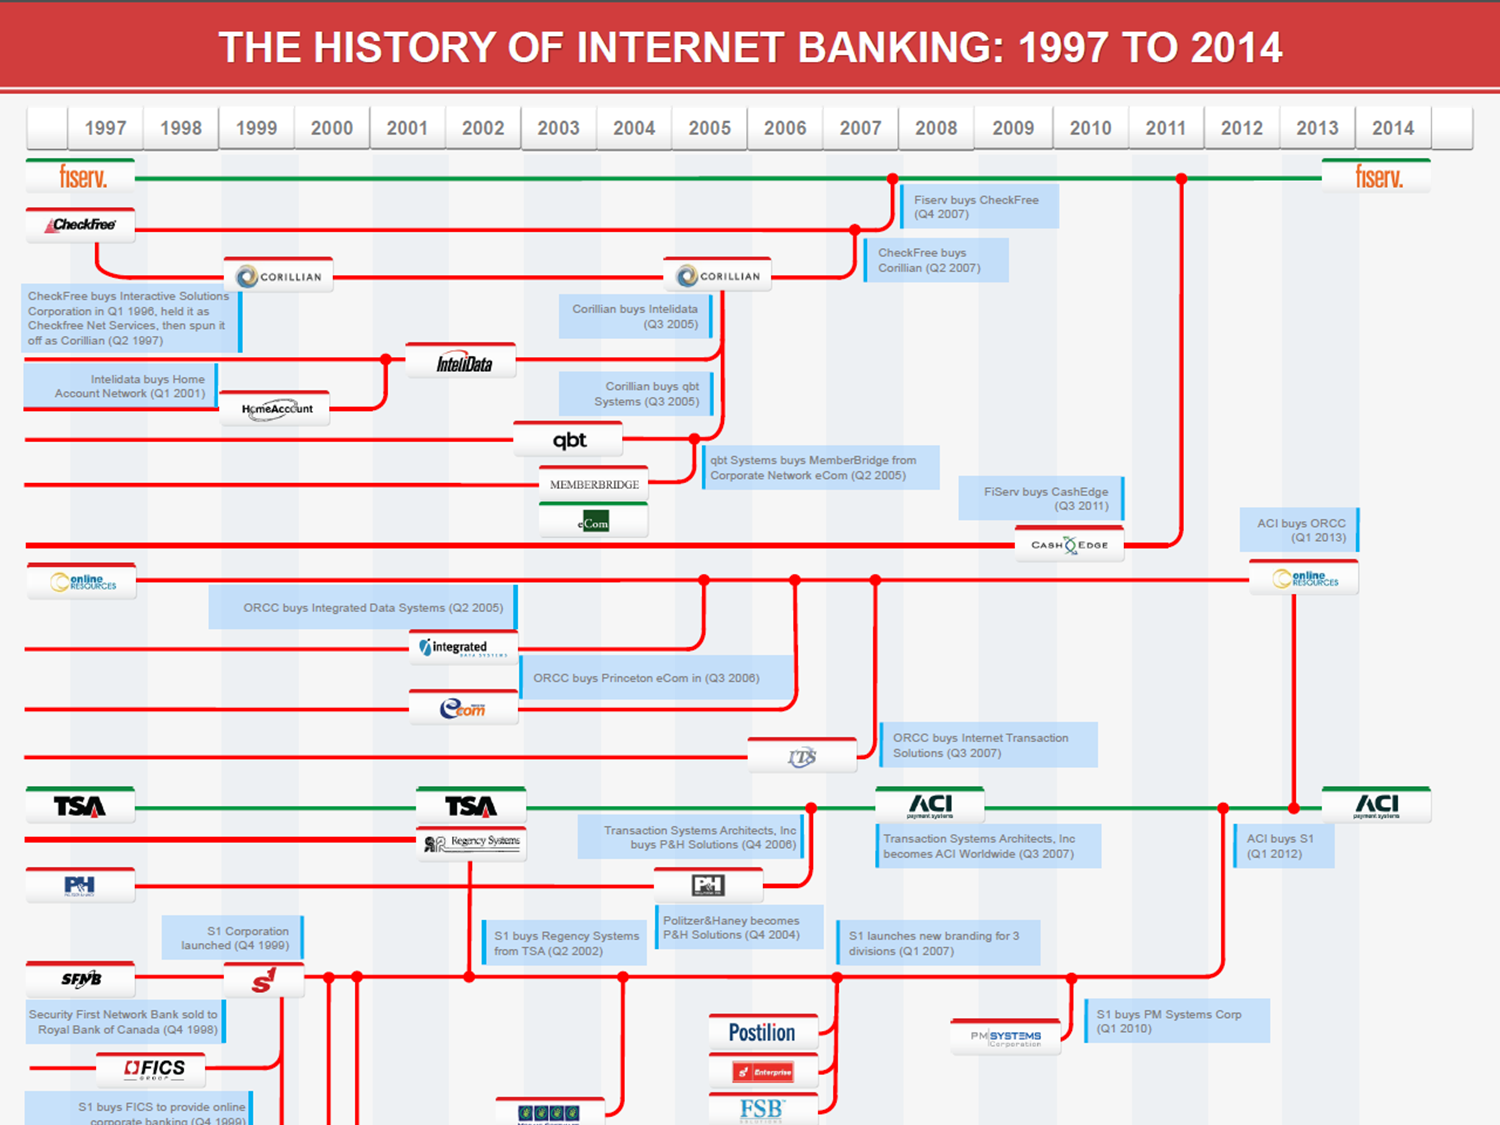 The History of Internet Banking